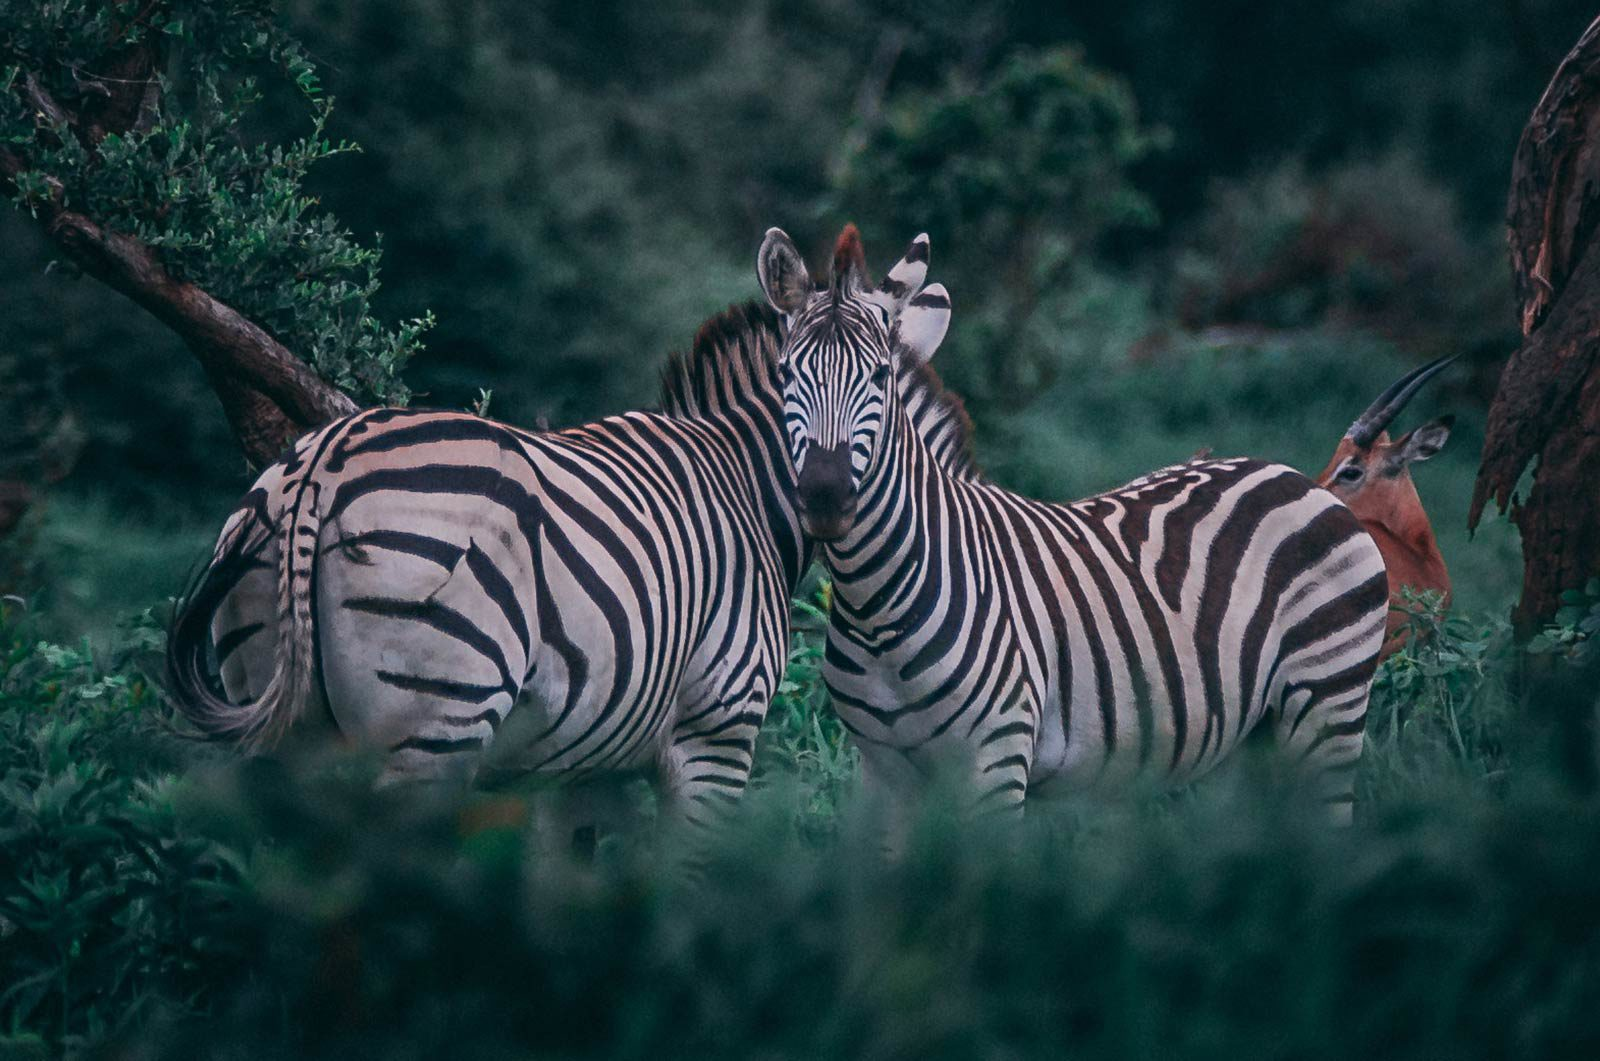 Zebras standing side by side in lush forest, one looking at camera.